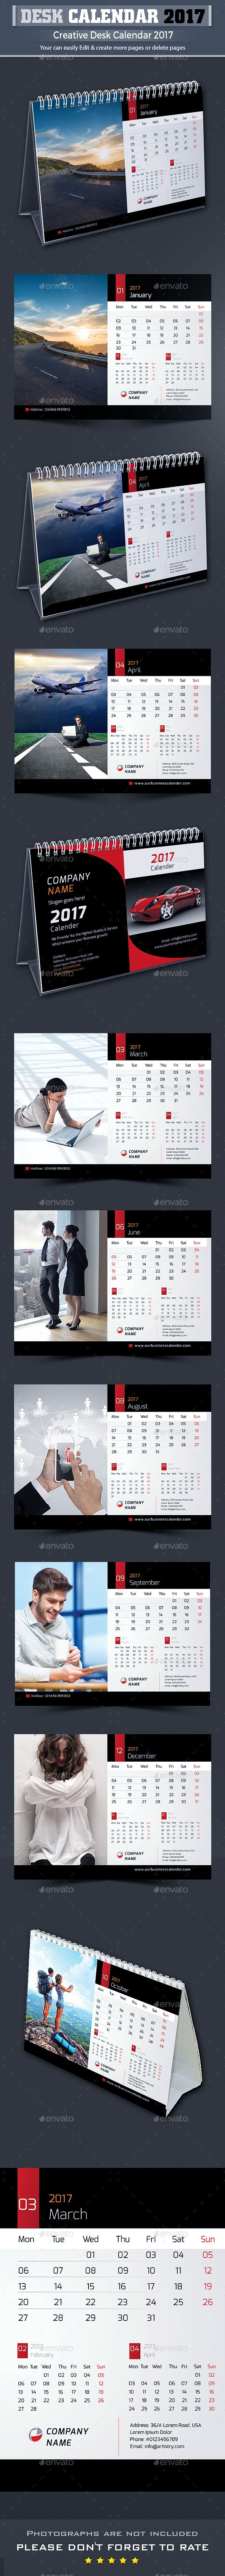 Best Calendar Images On   Desk Calendars Calendar